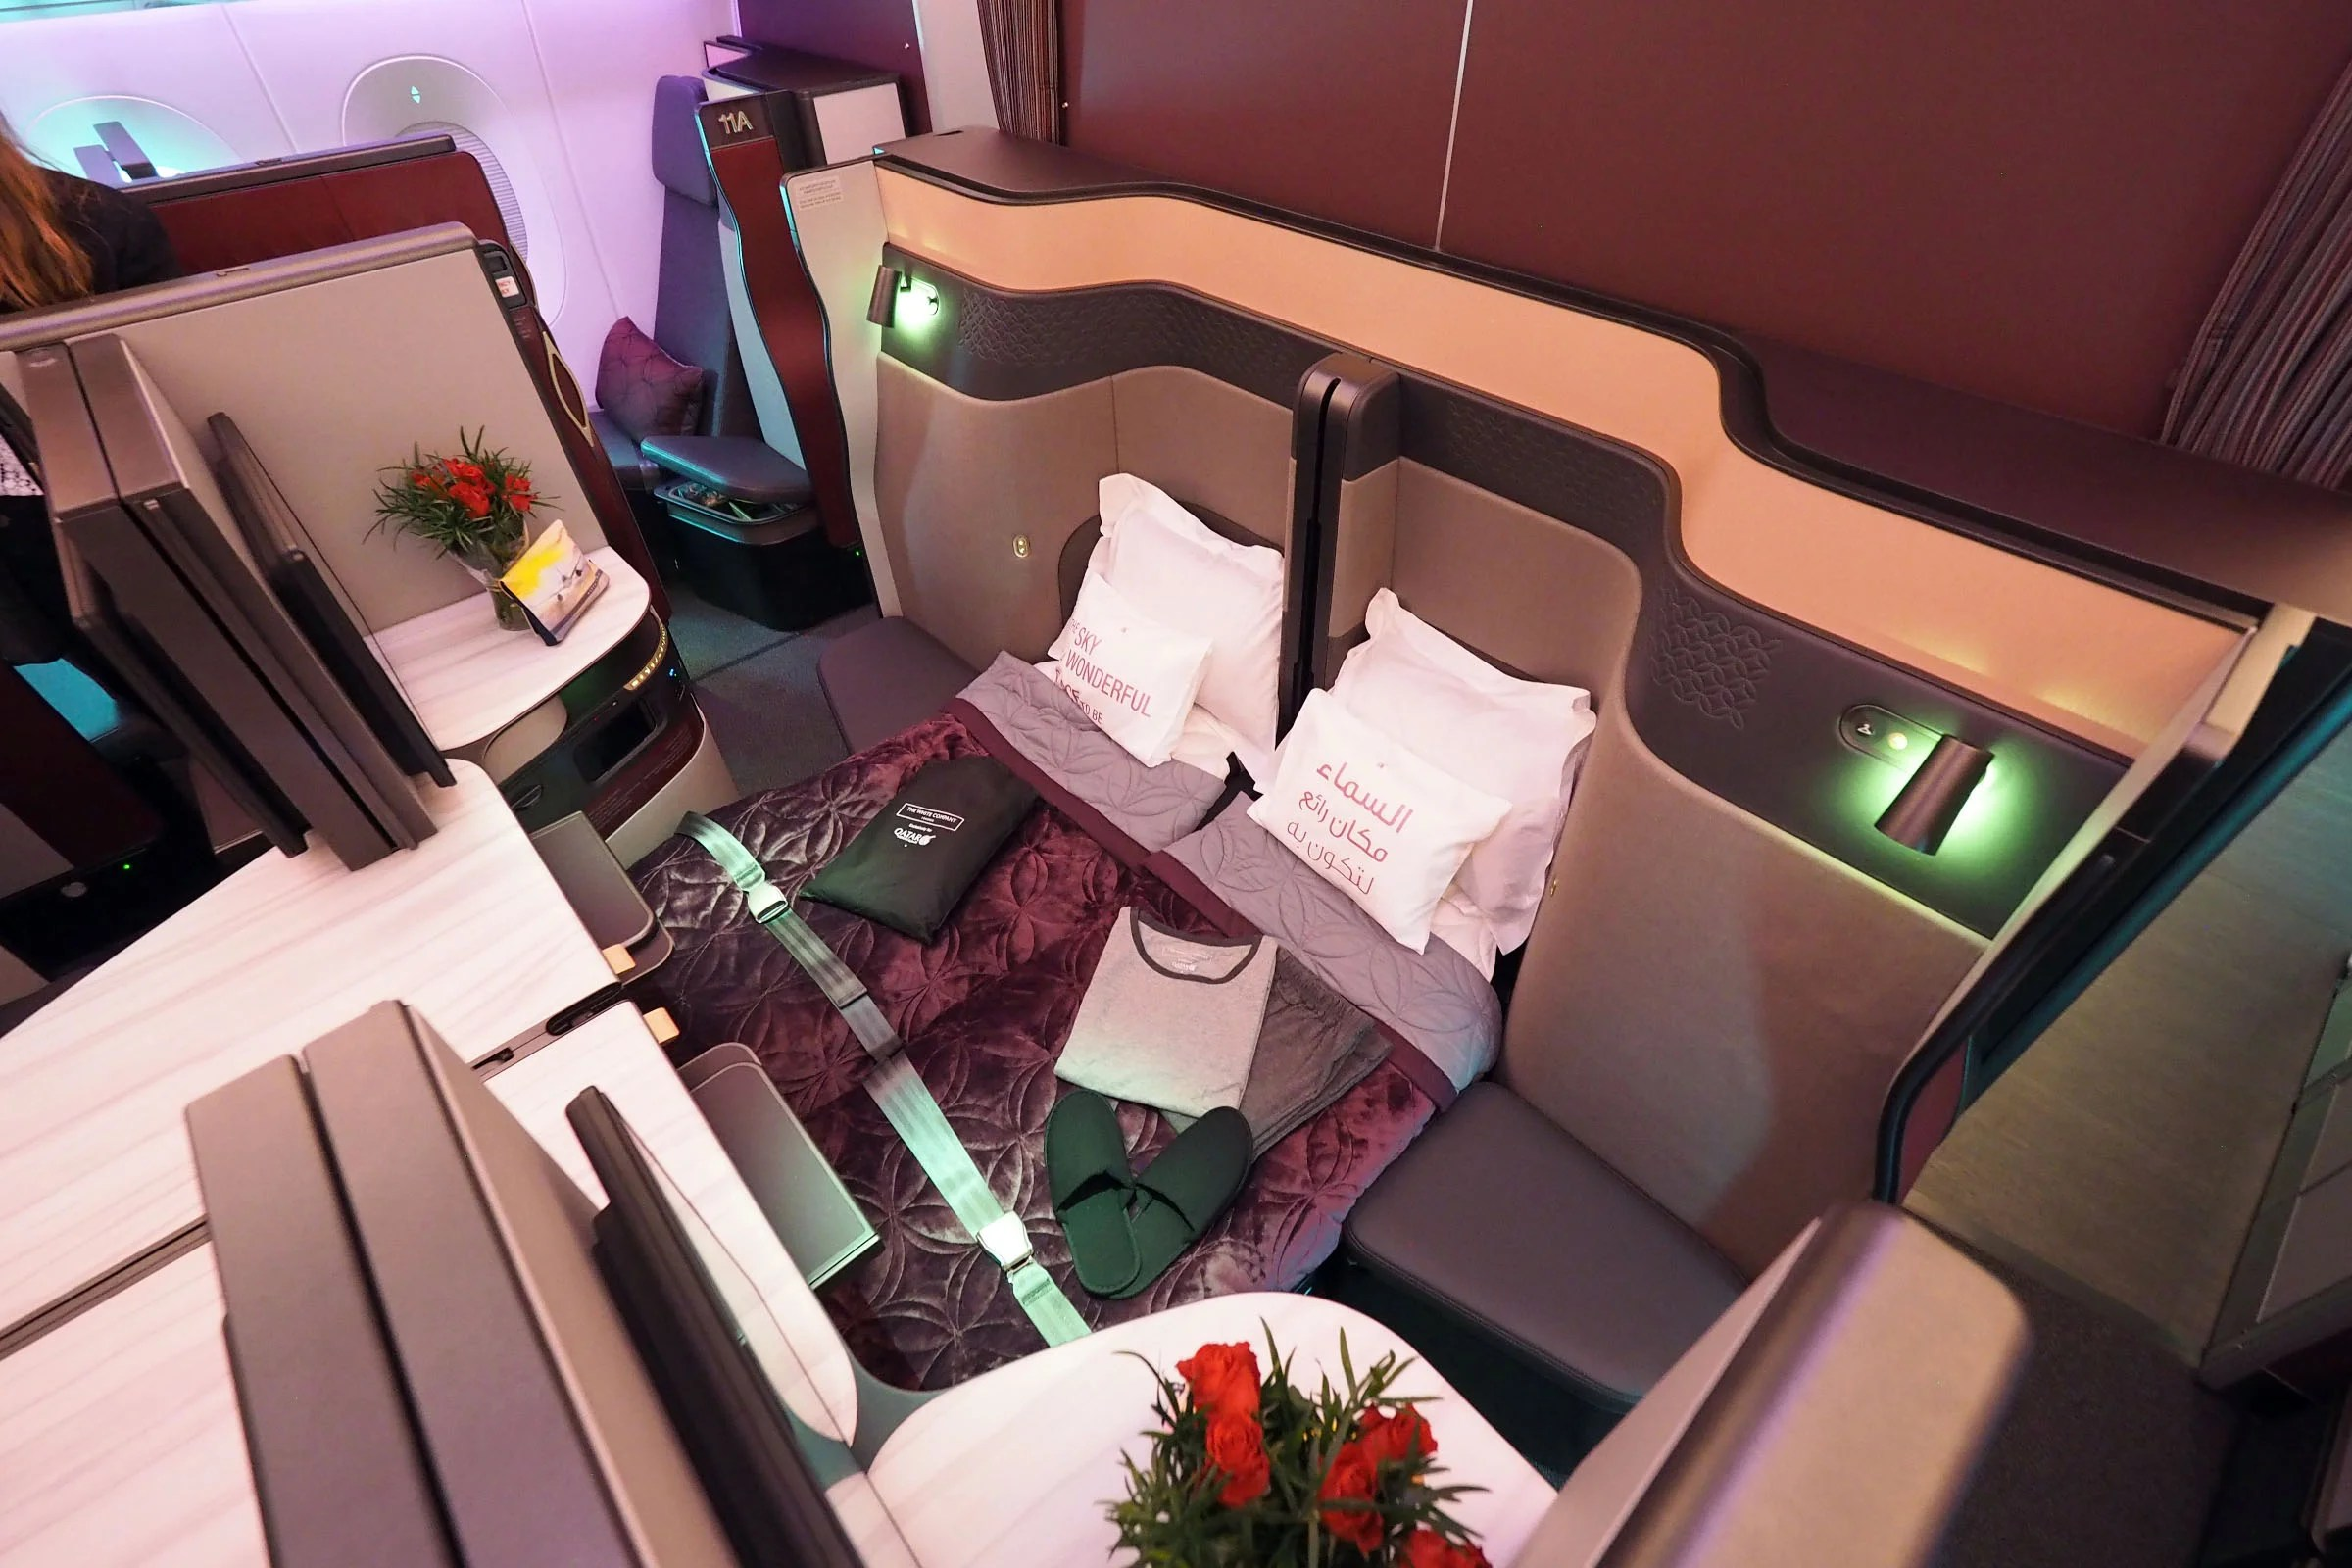 8 Airlines With the Best International Business Class Seats for Families